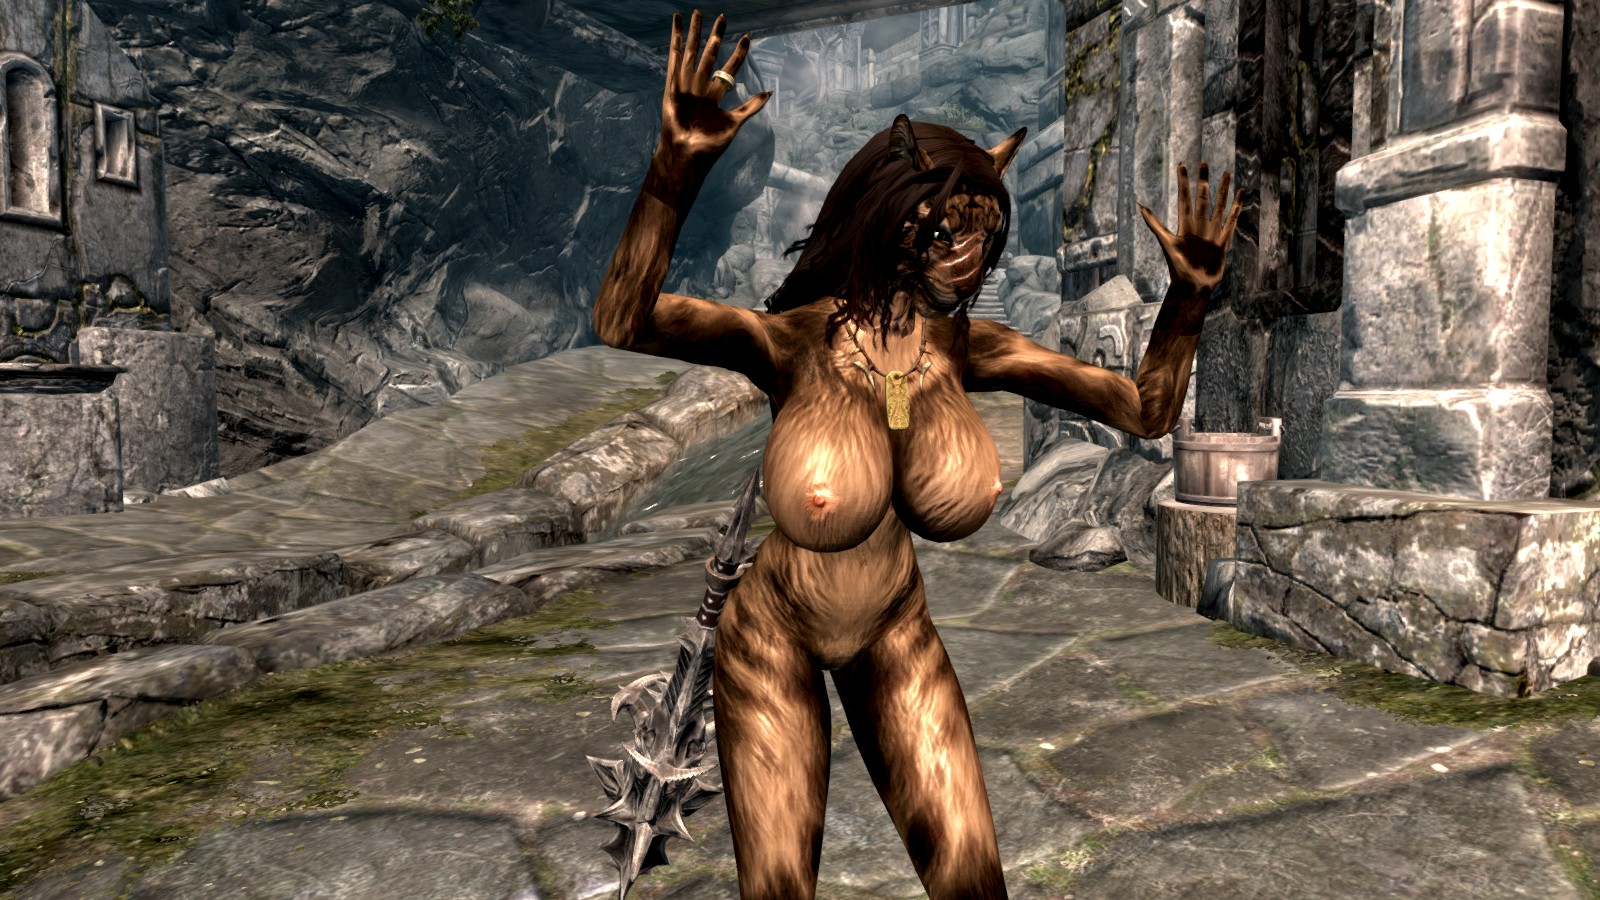 The elder scrolls female porn cartoon galleries